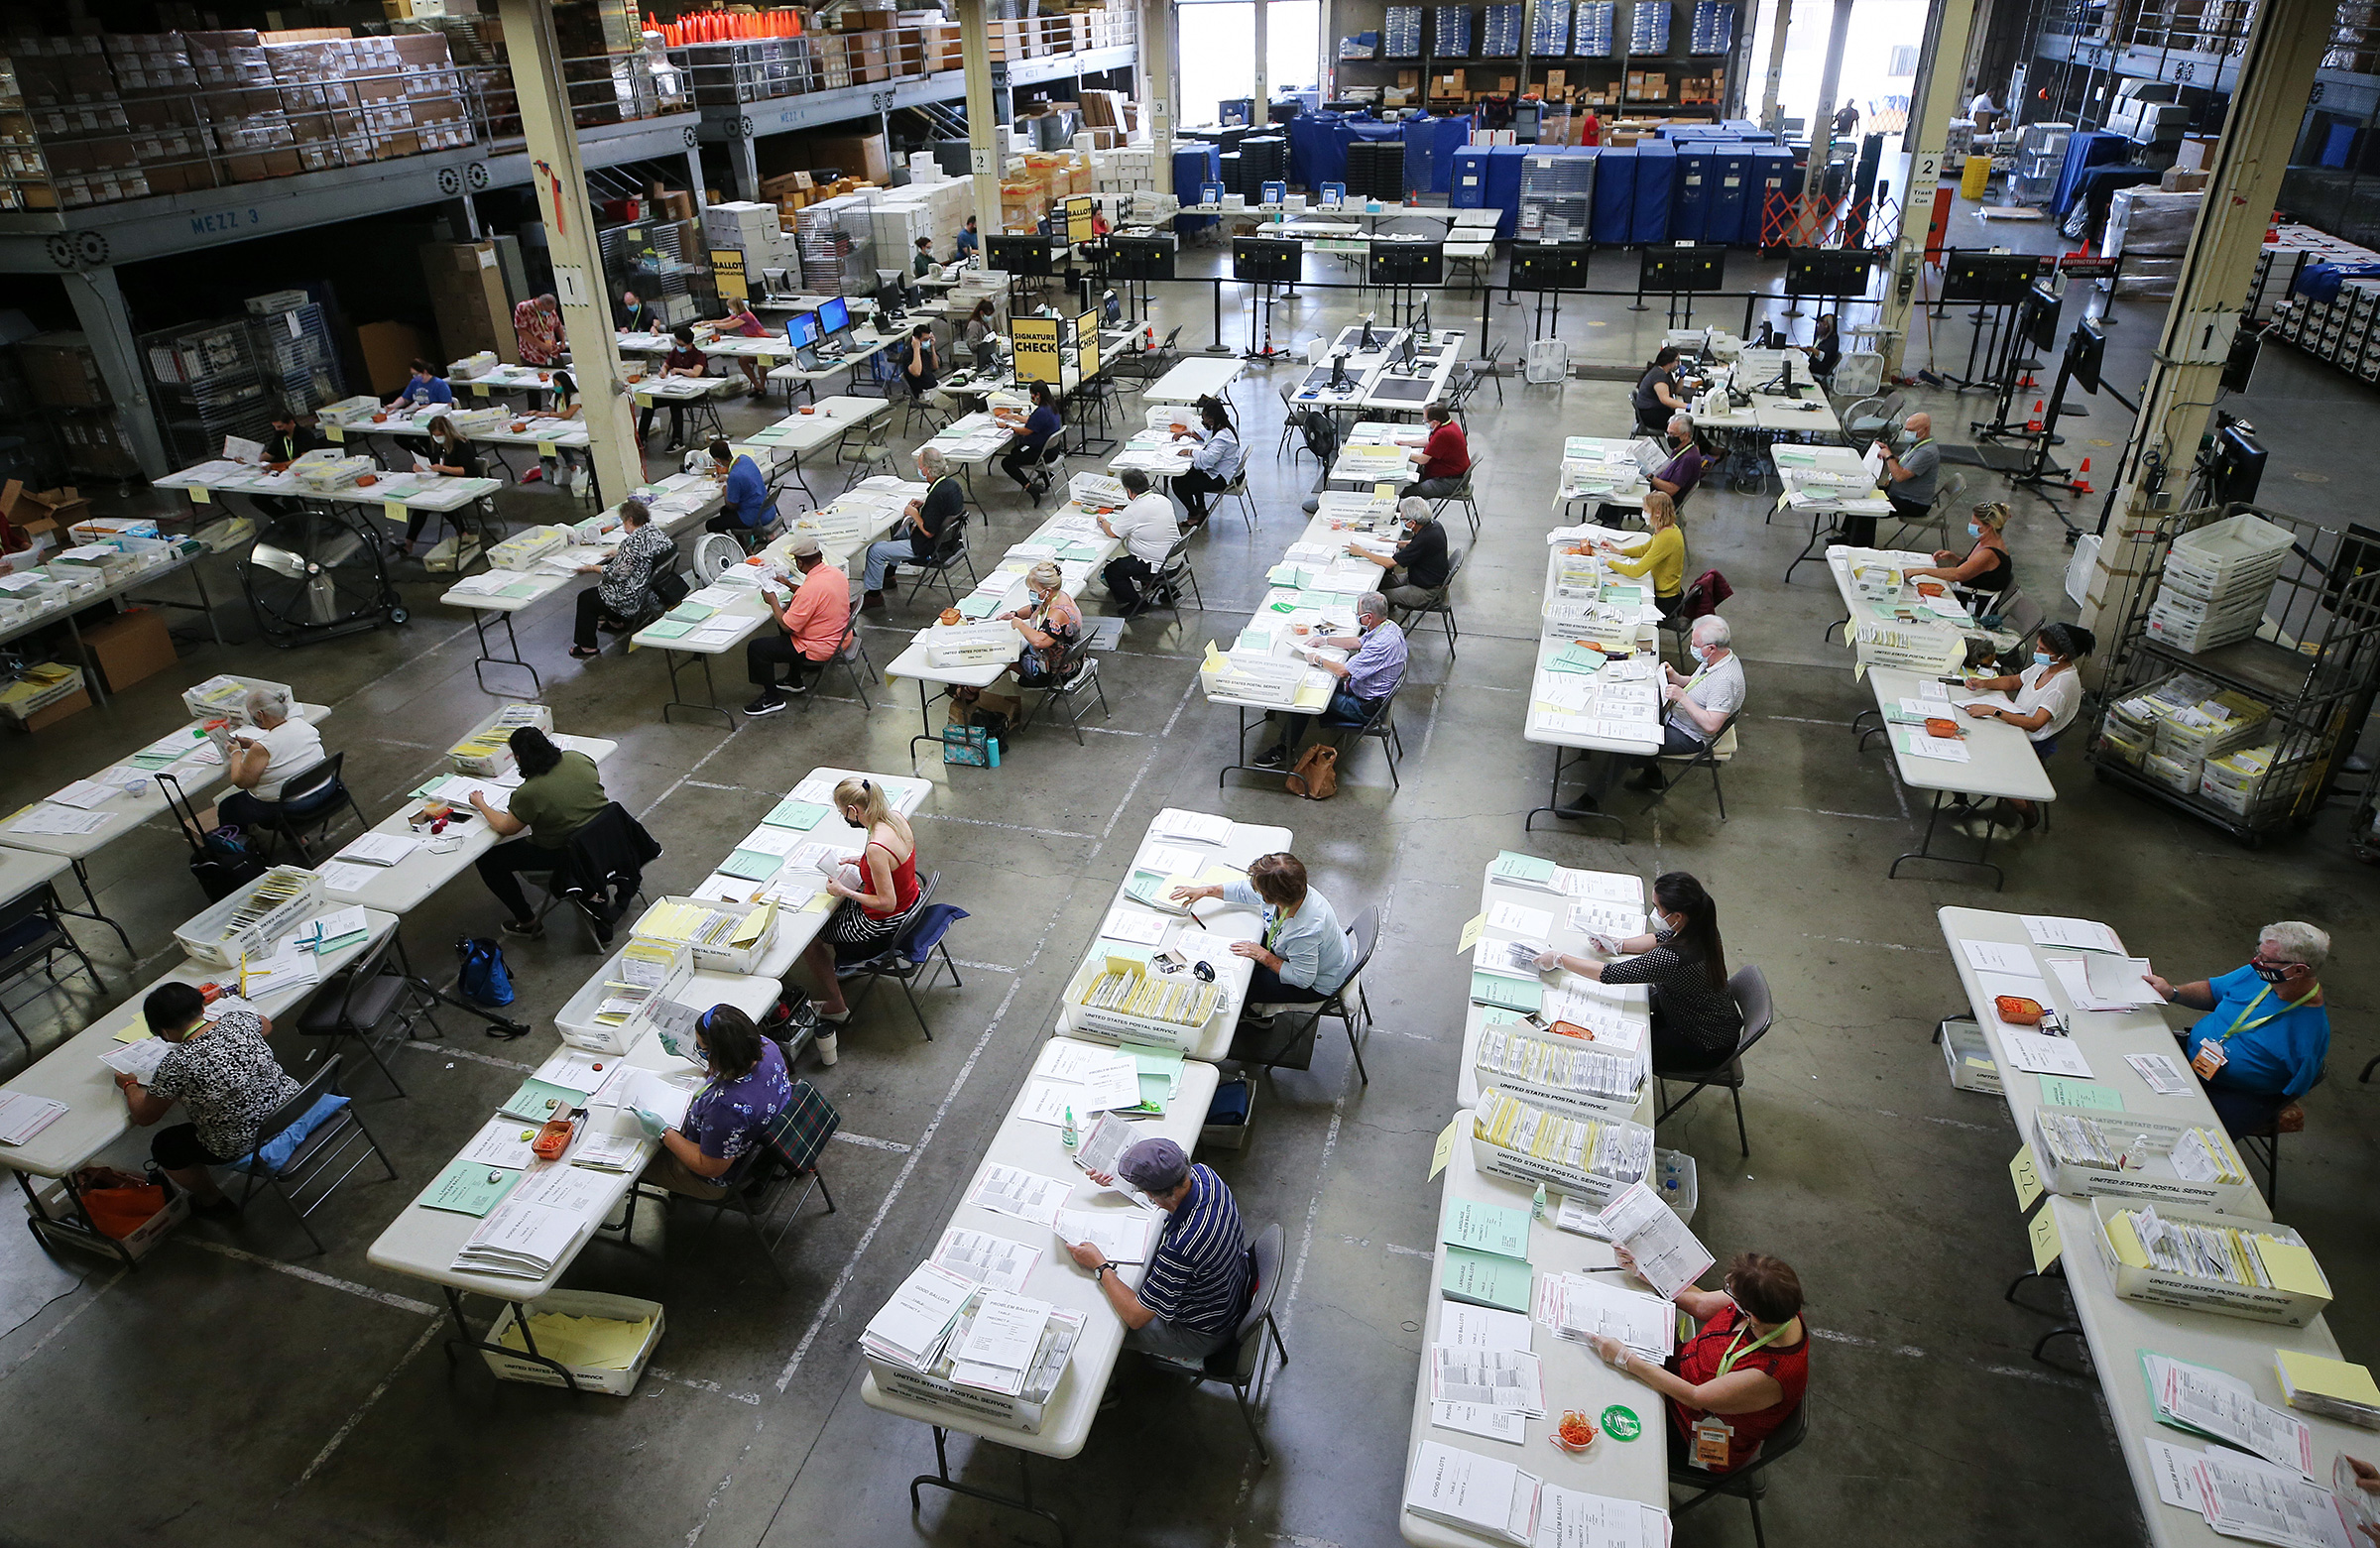 Election workers process mail-in ballots at the Orange County Registrar of Voters in Santa Ana, Calif., on Oct. 19, 2020.